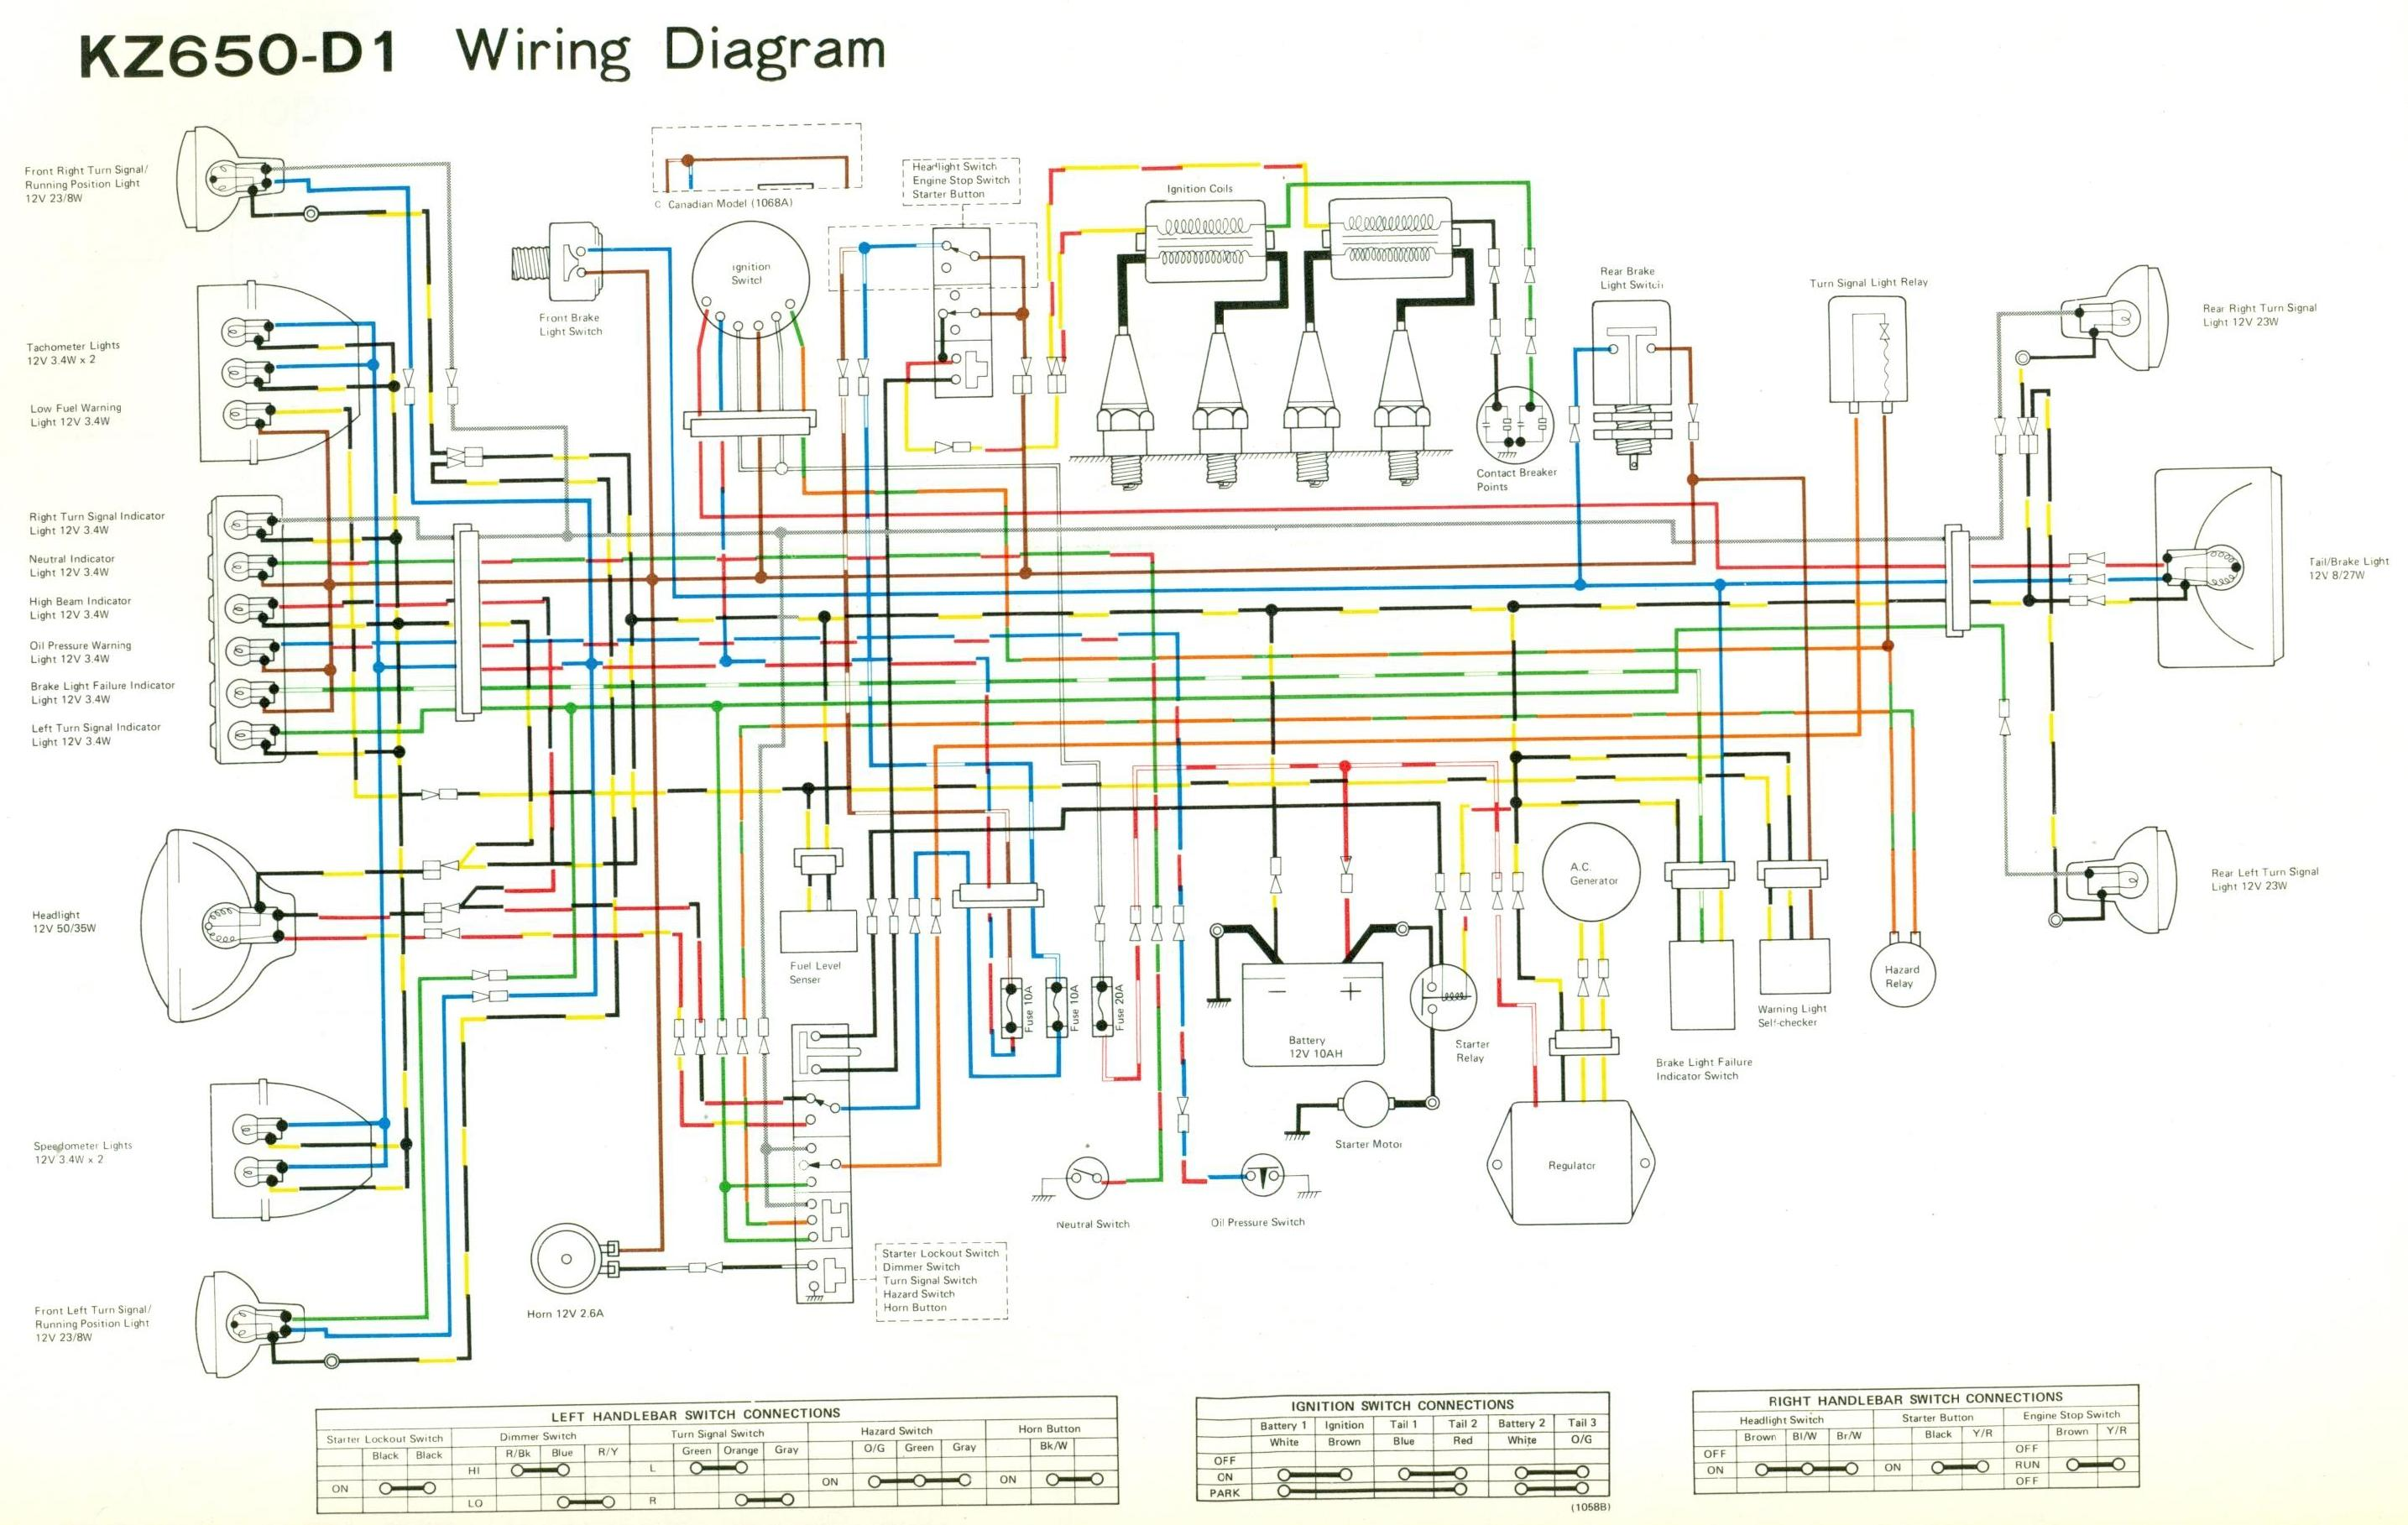 82 Kz1000 Wiring Diagram Books Of 2001 Diagrams Rh Oregonmotorcycleparts Com